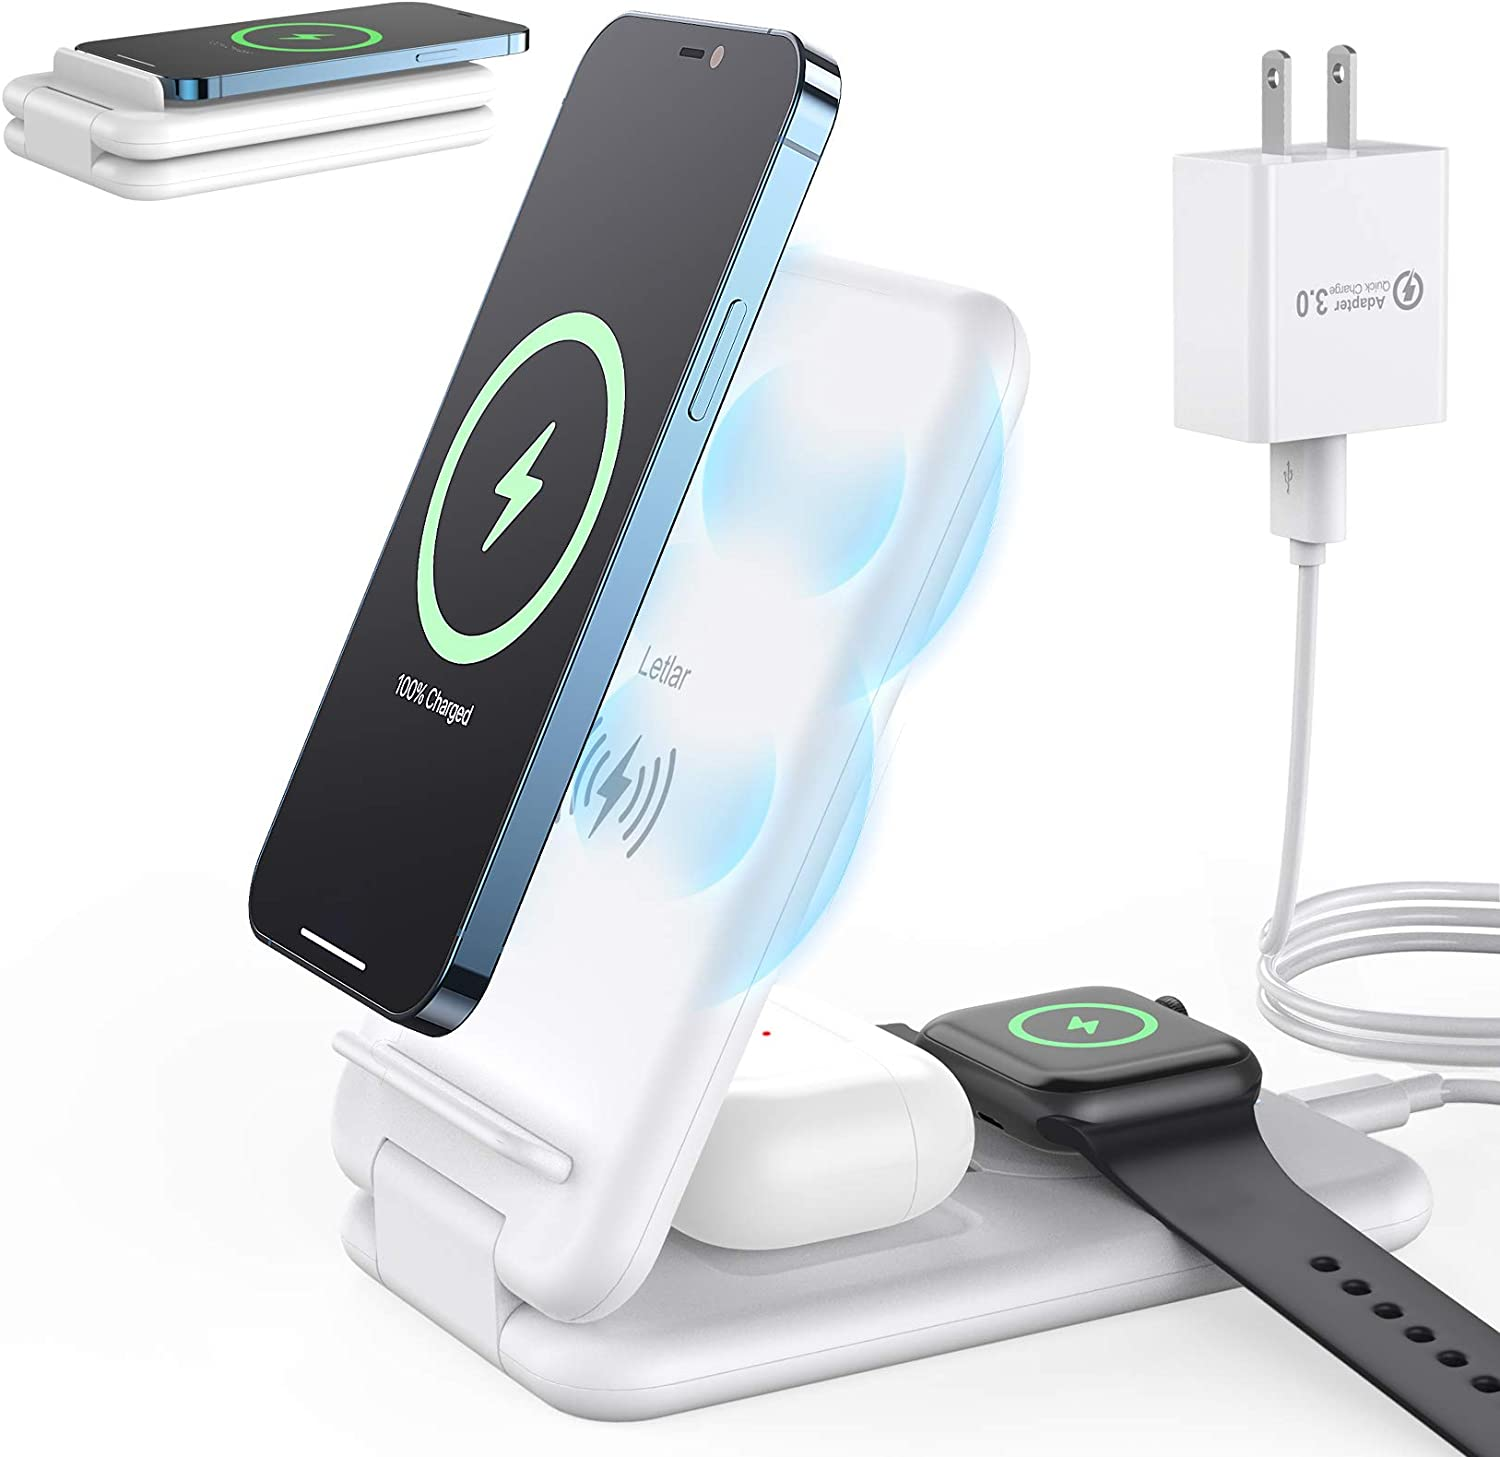 Wireless Charging Station, Letlar Foldable 3 in 1 Wireless Charger, Qi 15W Fast Charger Stand Compatible with iPhone 12/11/11 Pro/XR/Xs/X/8/8P/Samsung, iWatch SE 6 5 4 3 2, AirPods 2/Pro(White)